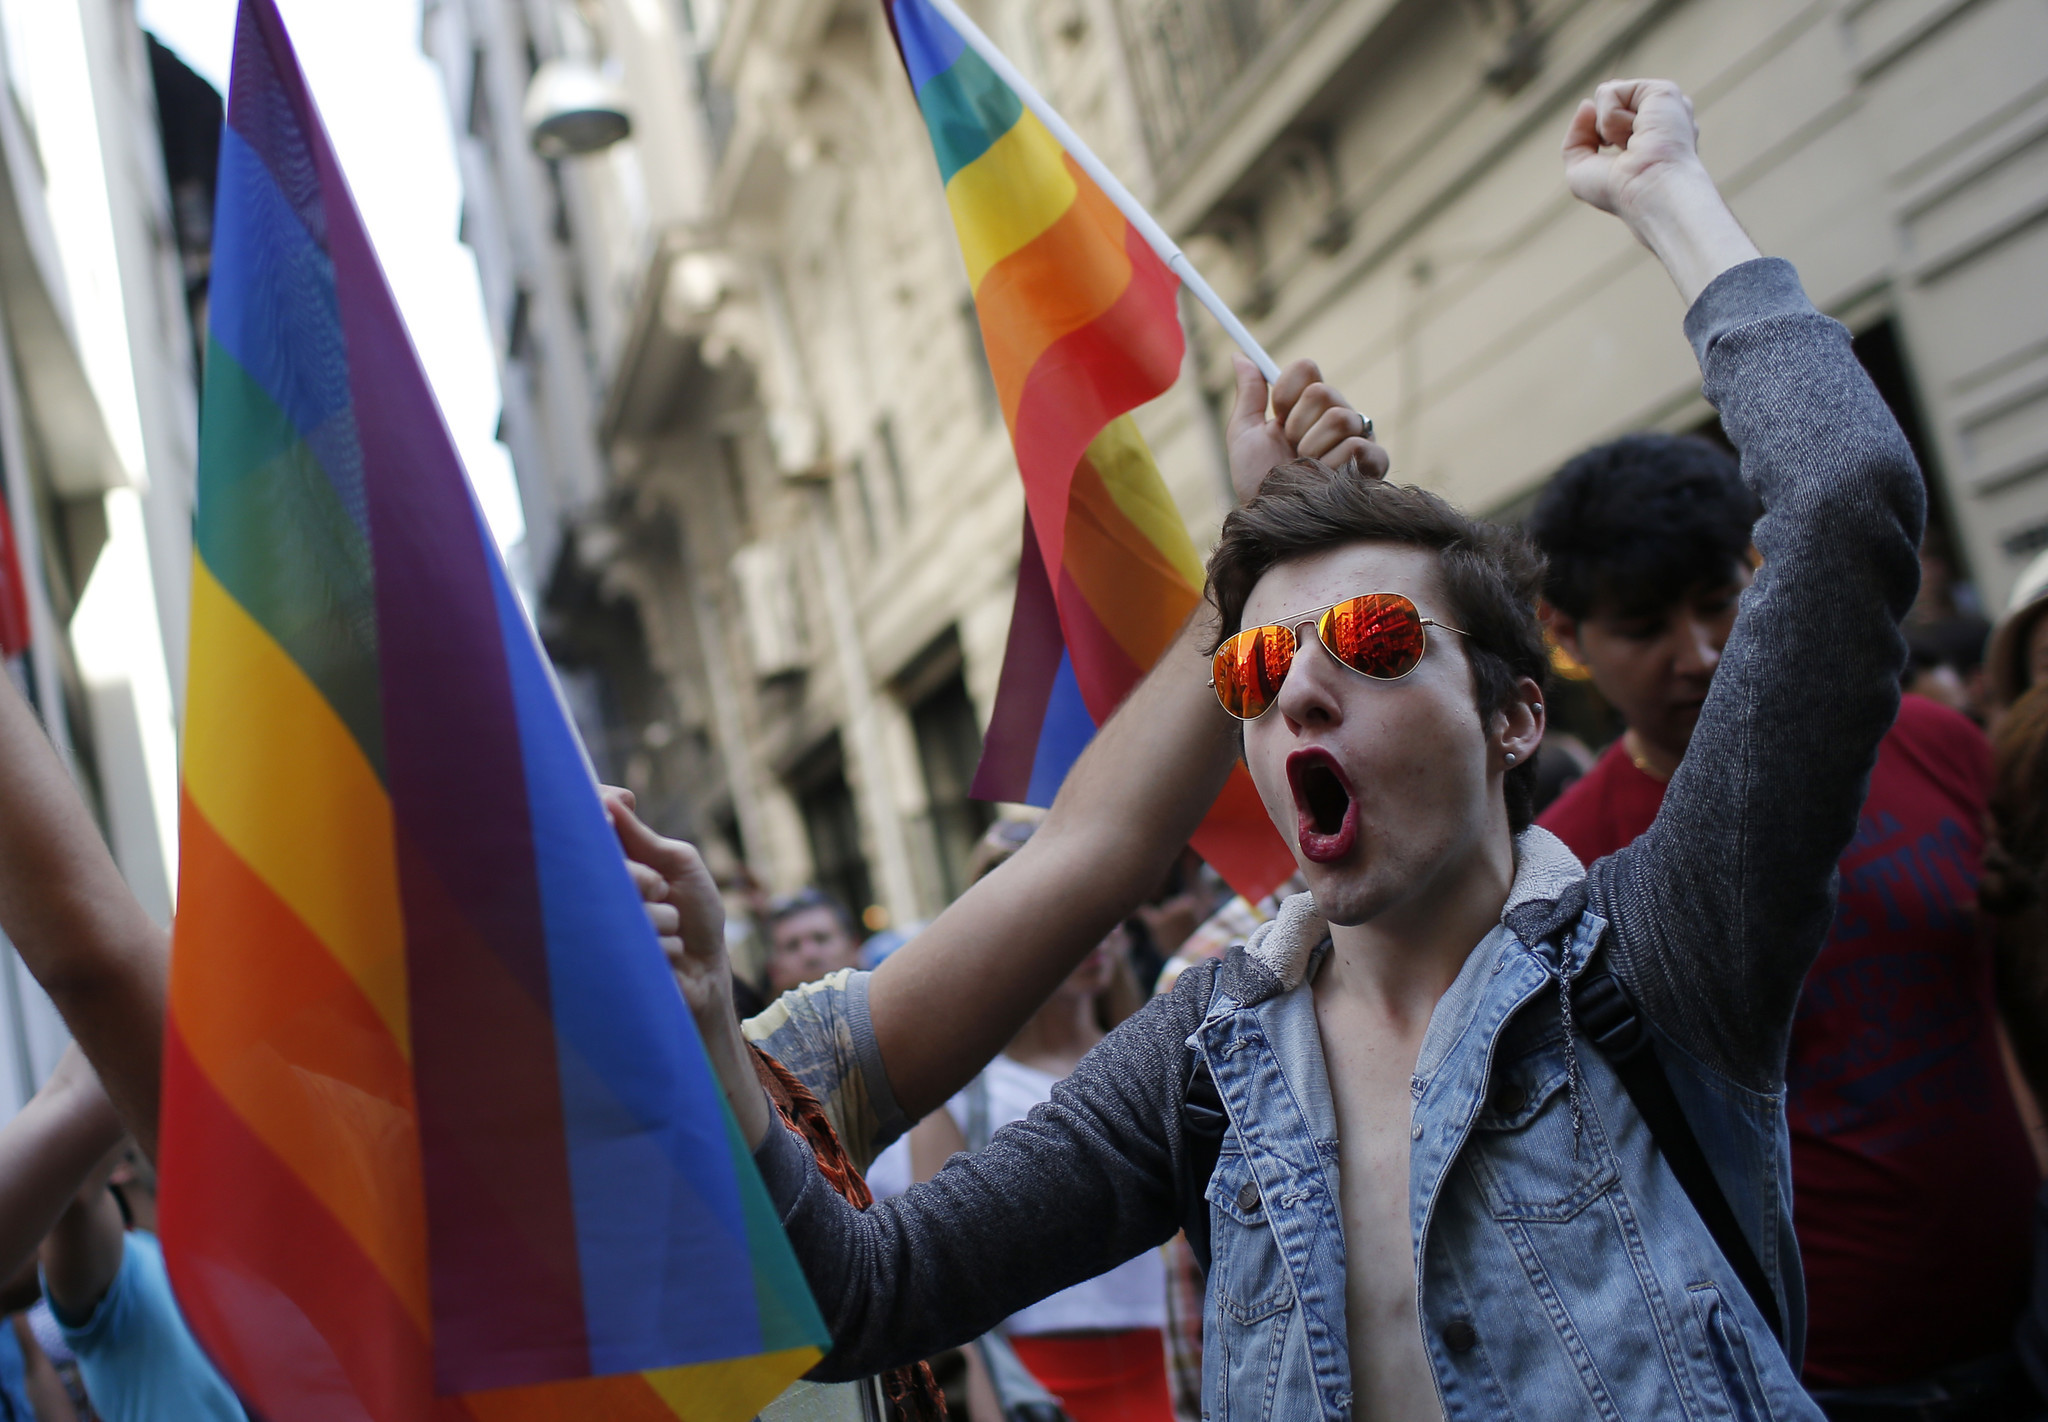 Turkey bans Istanbul Pride march, but organizers vow to rally anyway